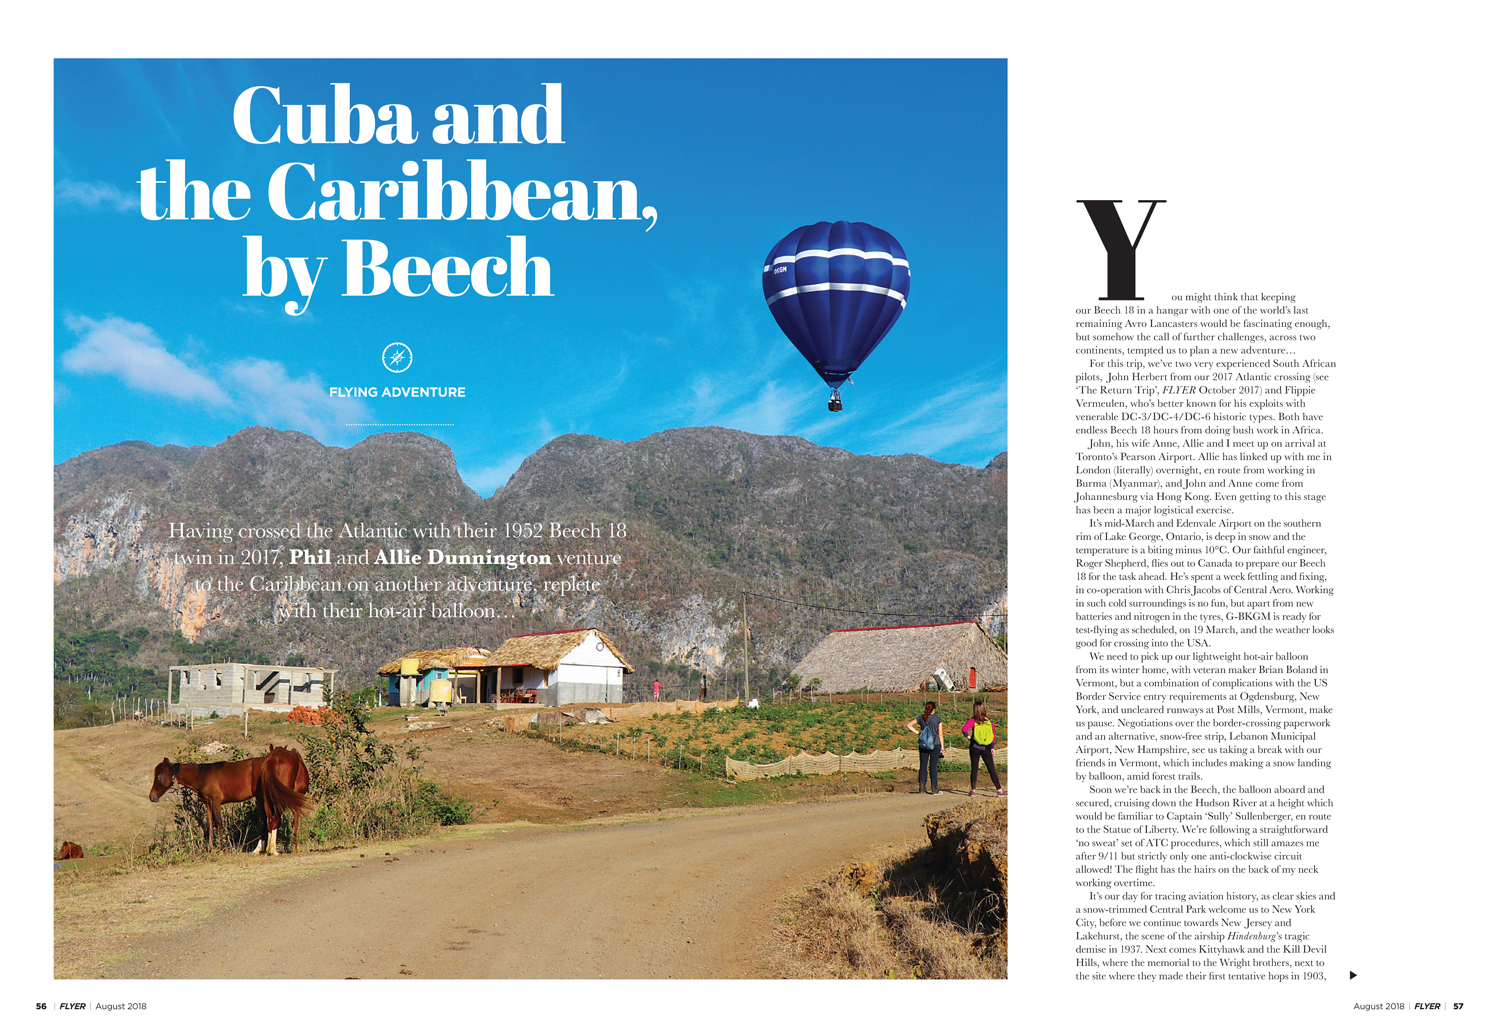 Cuba and Caribbean Beechcraft flying adventure